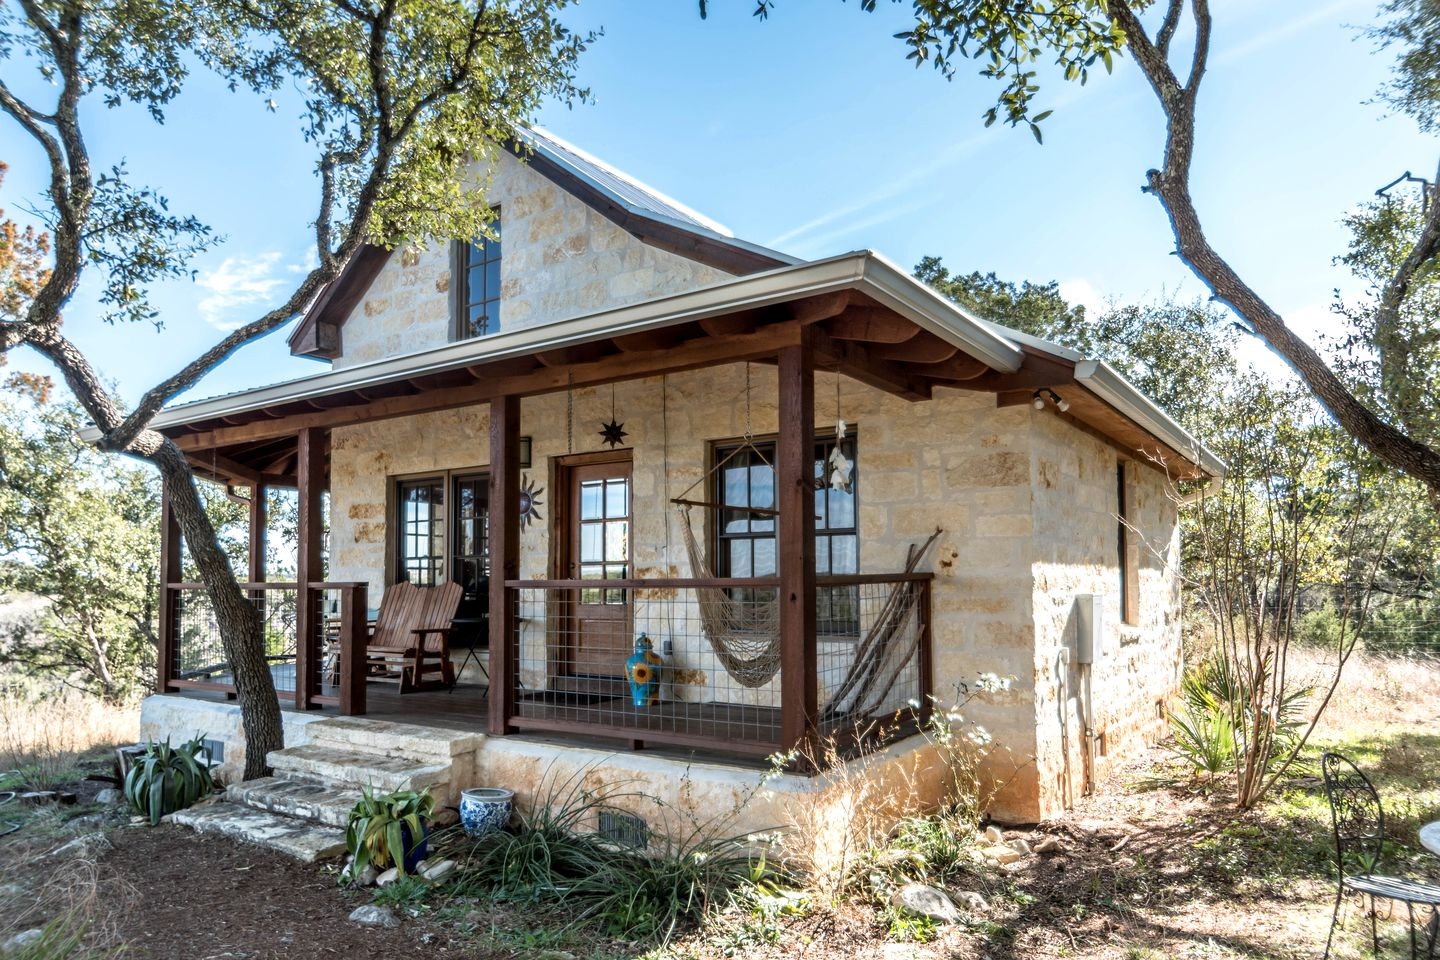 Texas Hill Country cabin rental near Hamilton Pool: cabins available today!